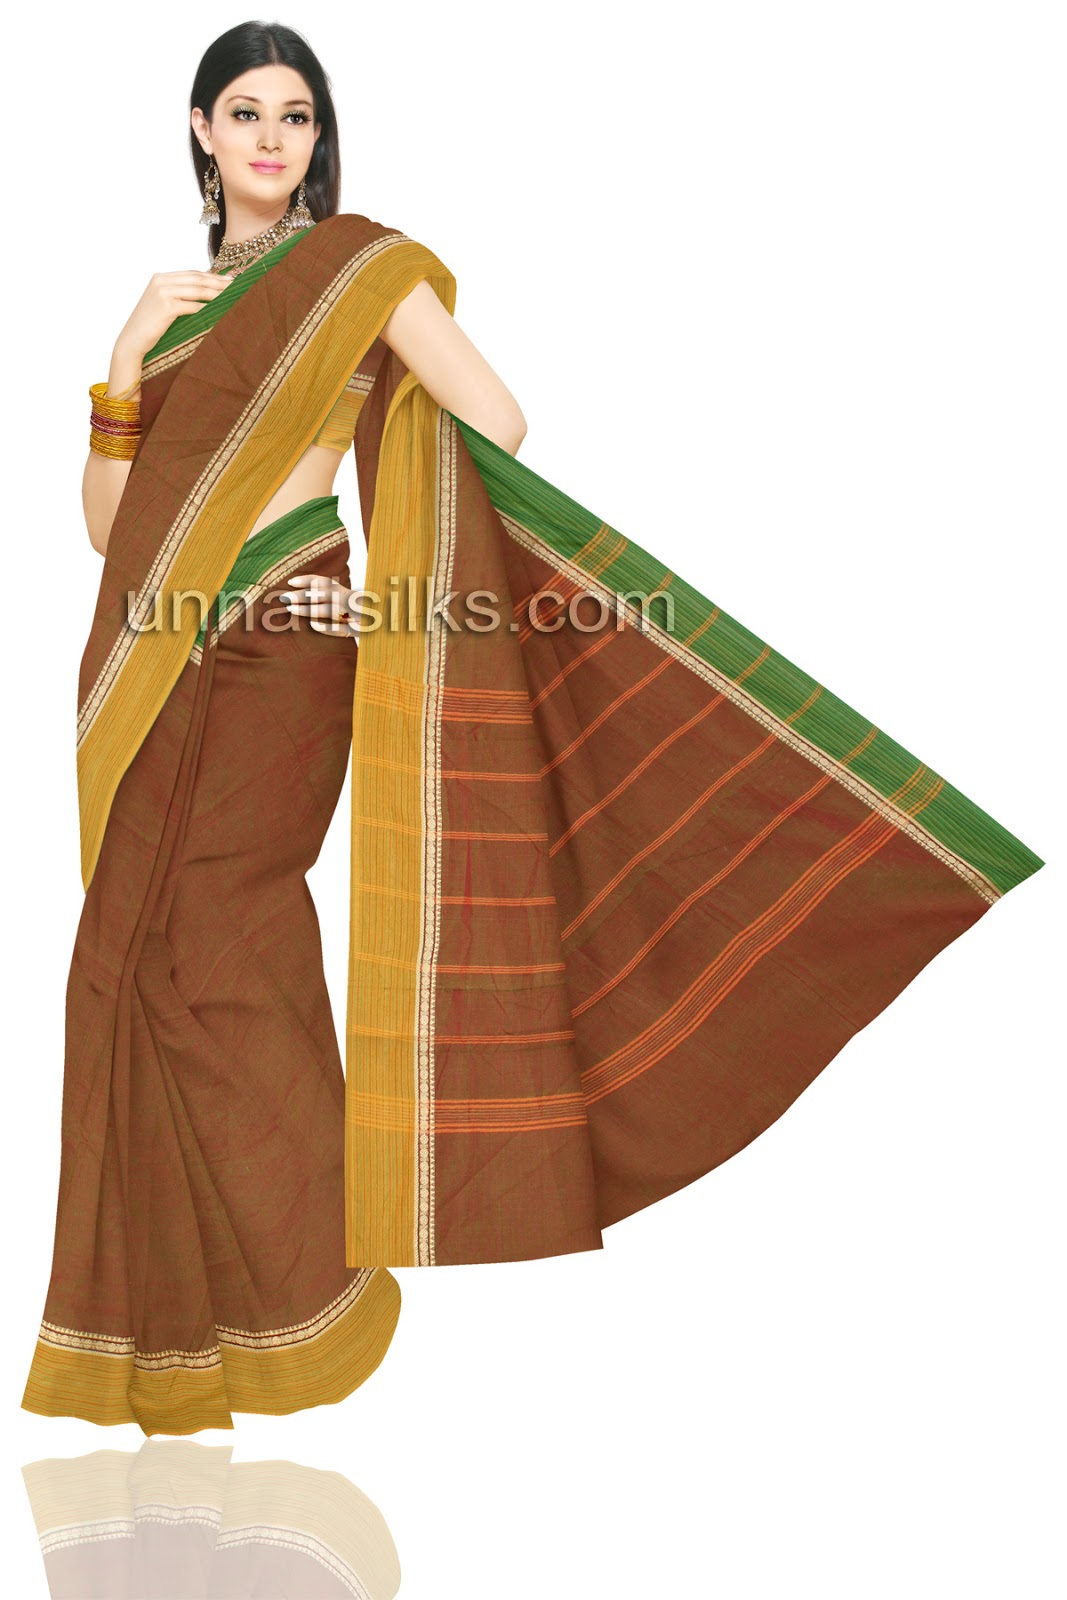 South Indian Fashion Sarees Online Shopping